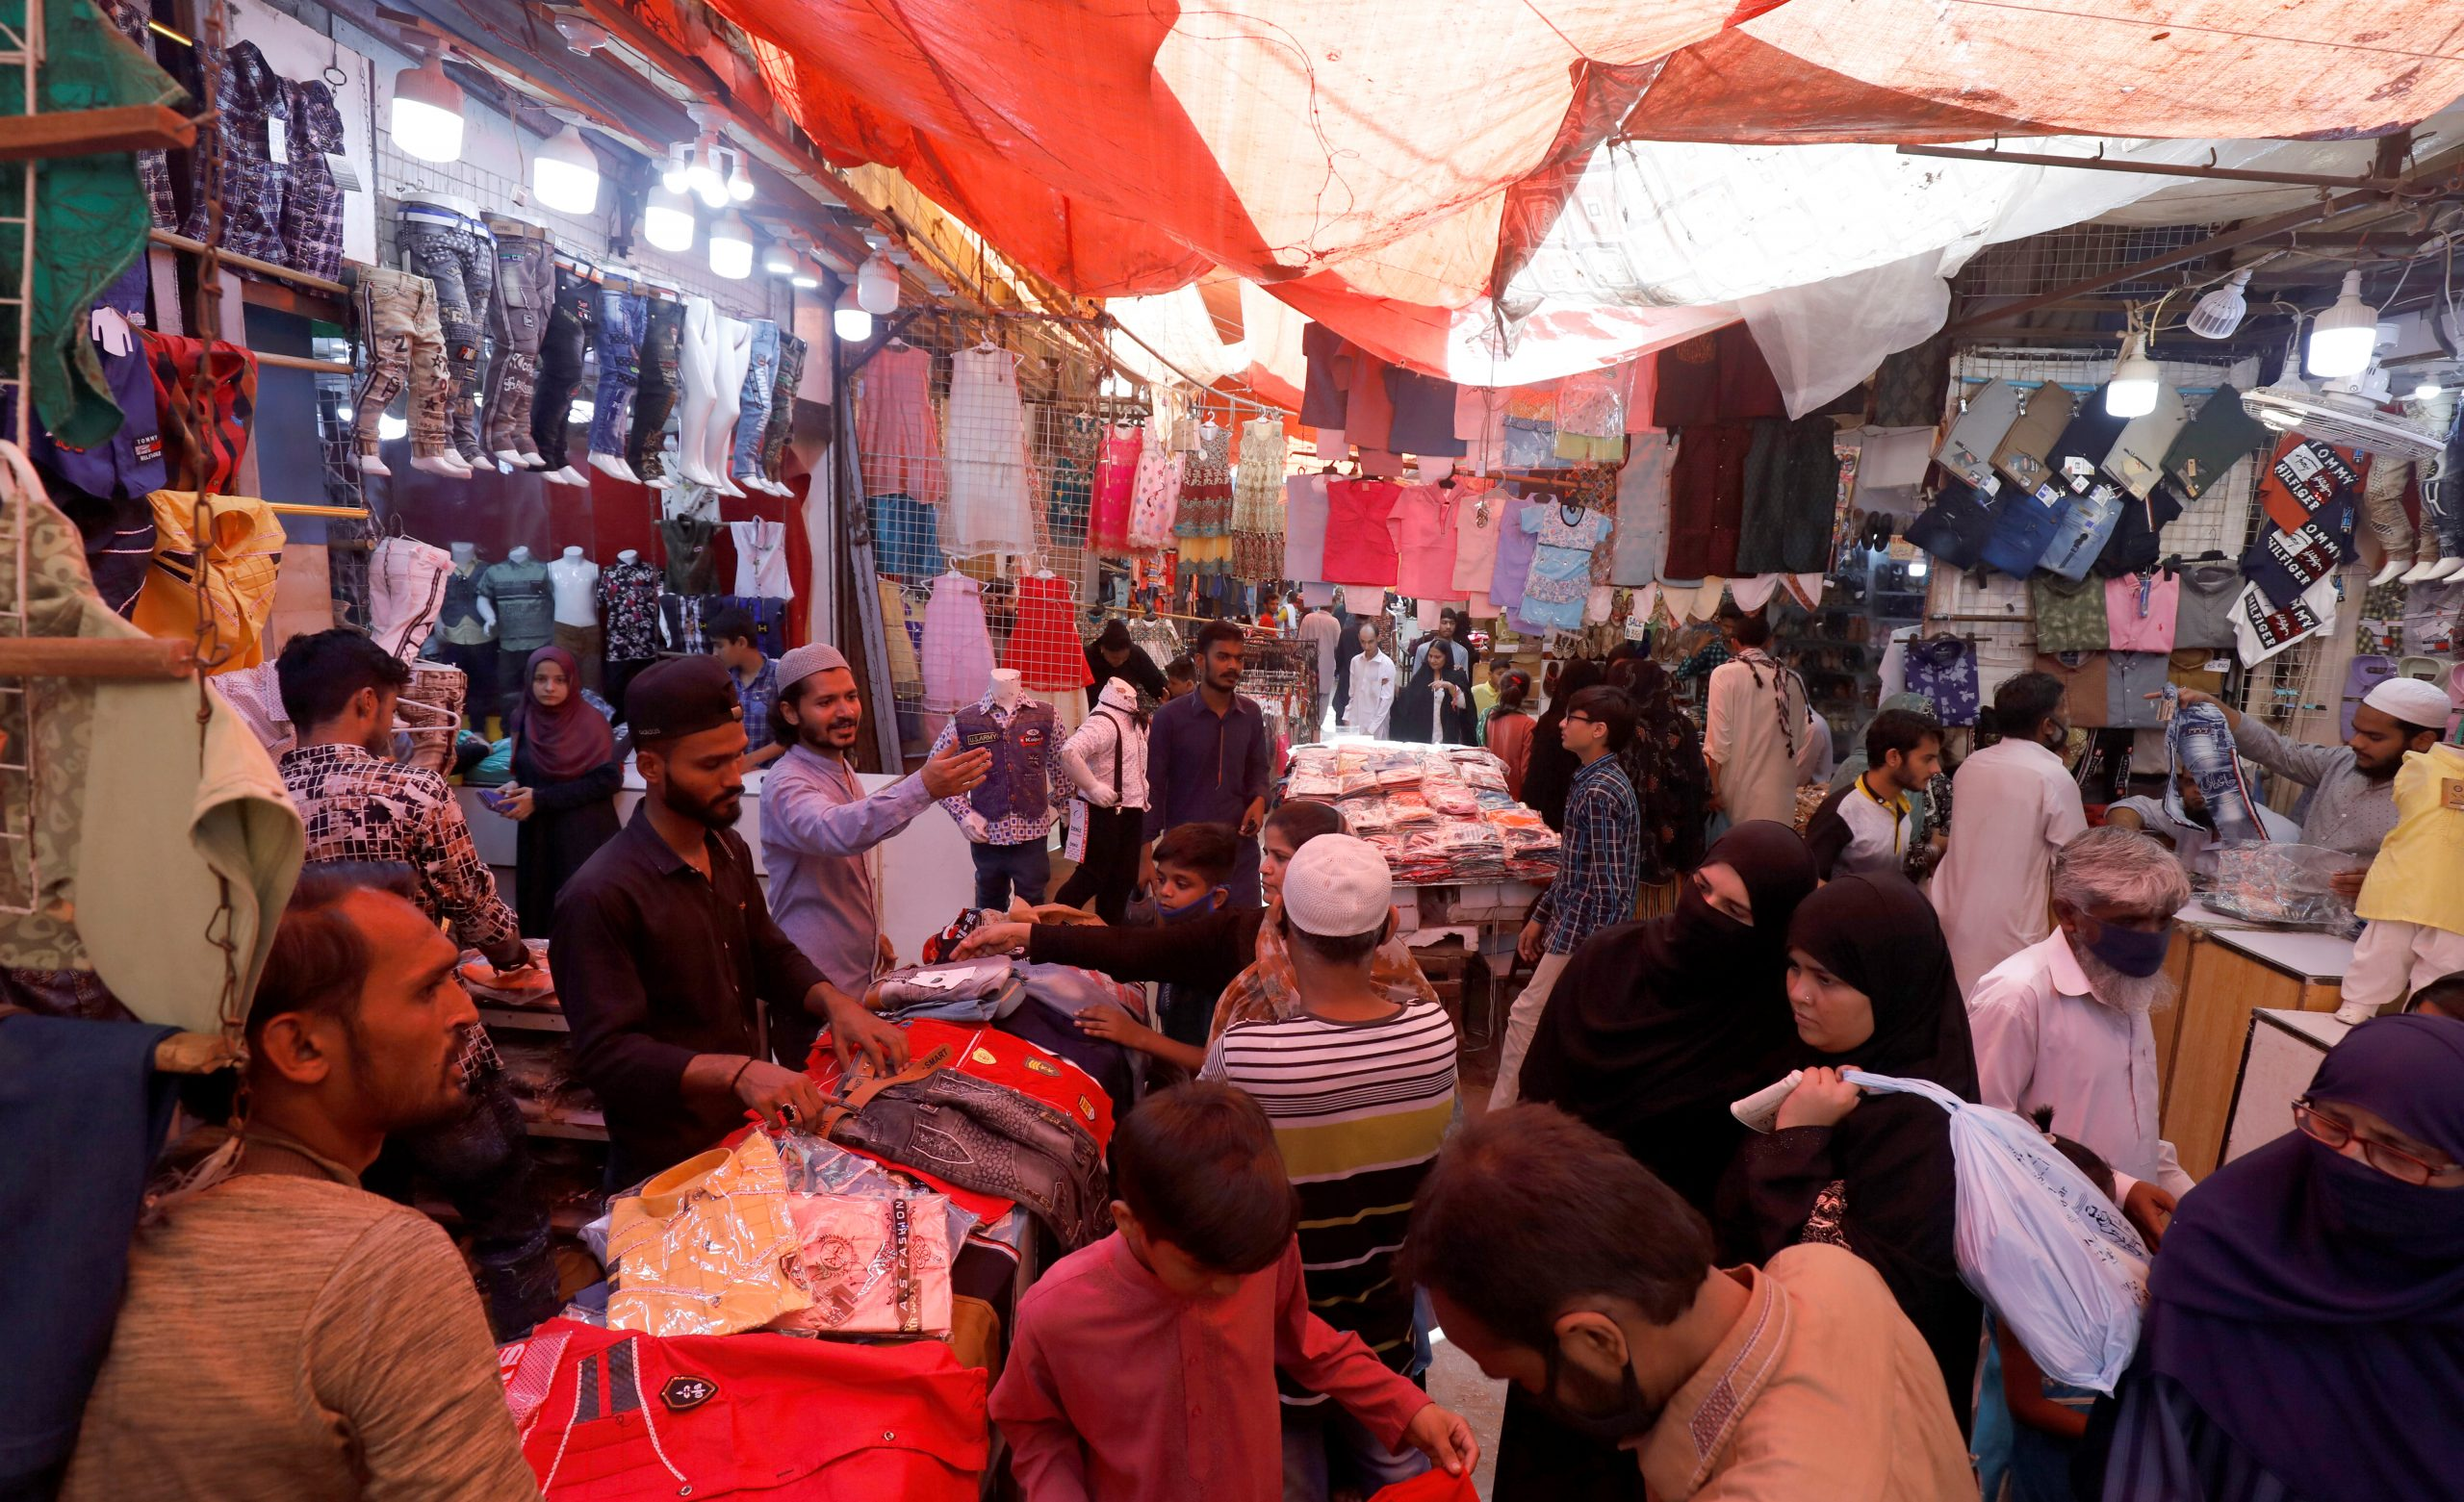 People shop from stalls in a market, after Pakistan started easing the lockdown as the coronavirus disease (COVID-19) continues, in Karachi, Pakistan May 11, 2020. REUTERS/Akhtar Soomro